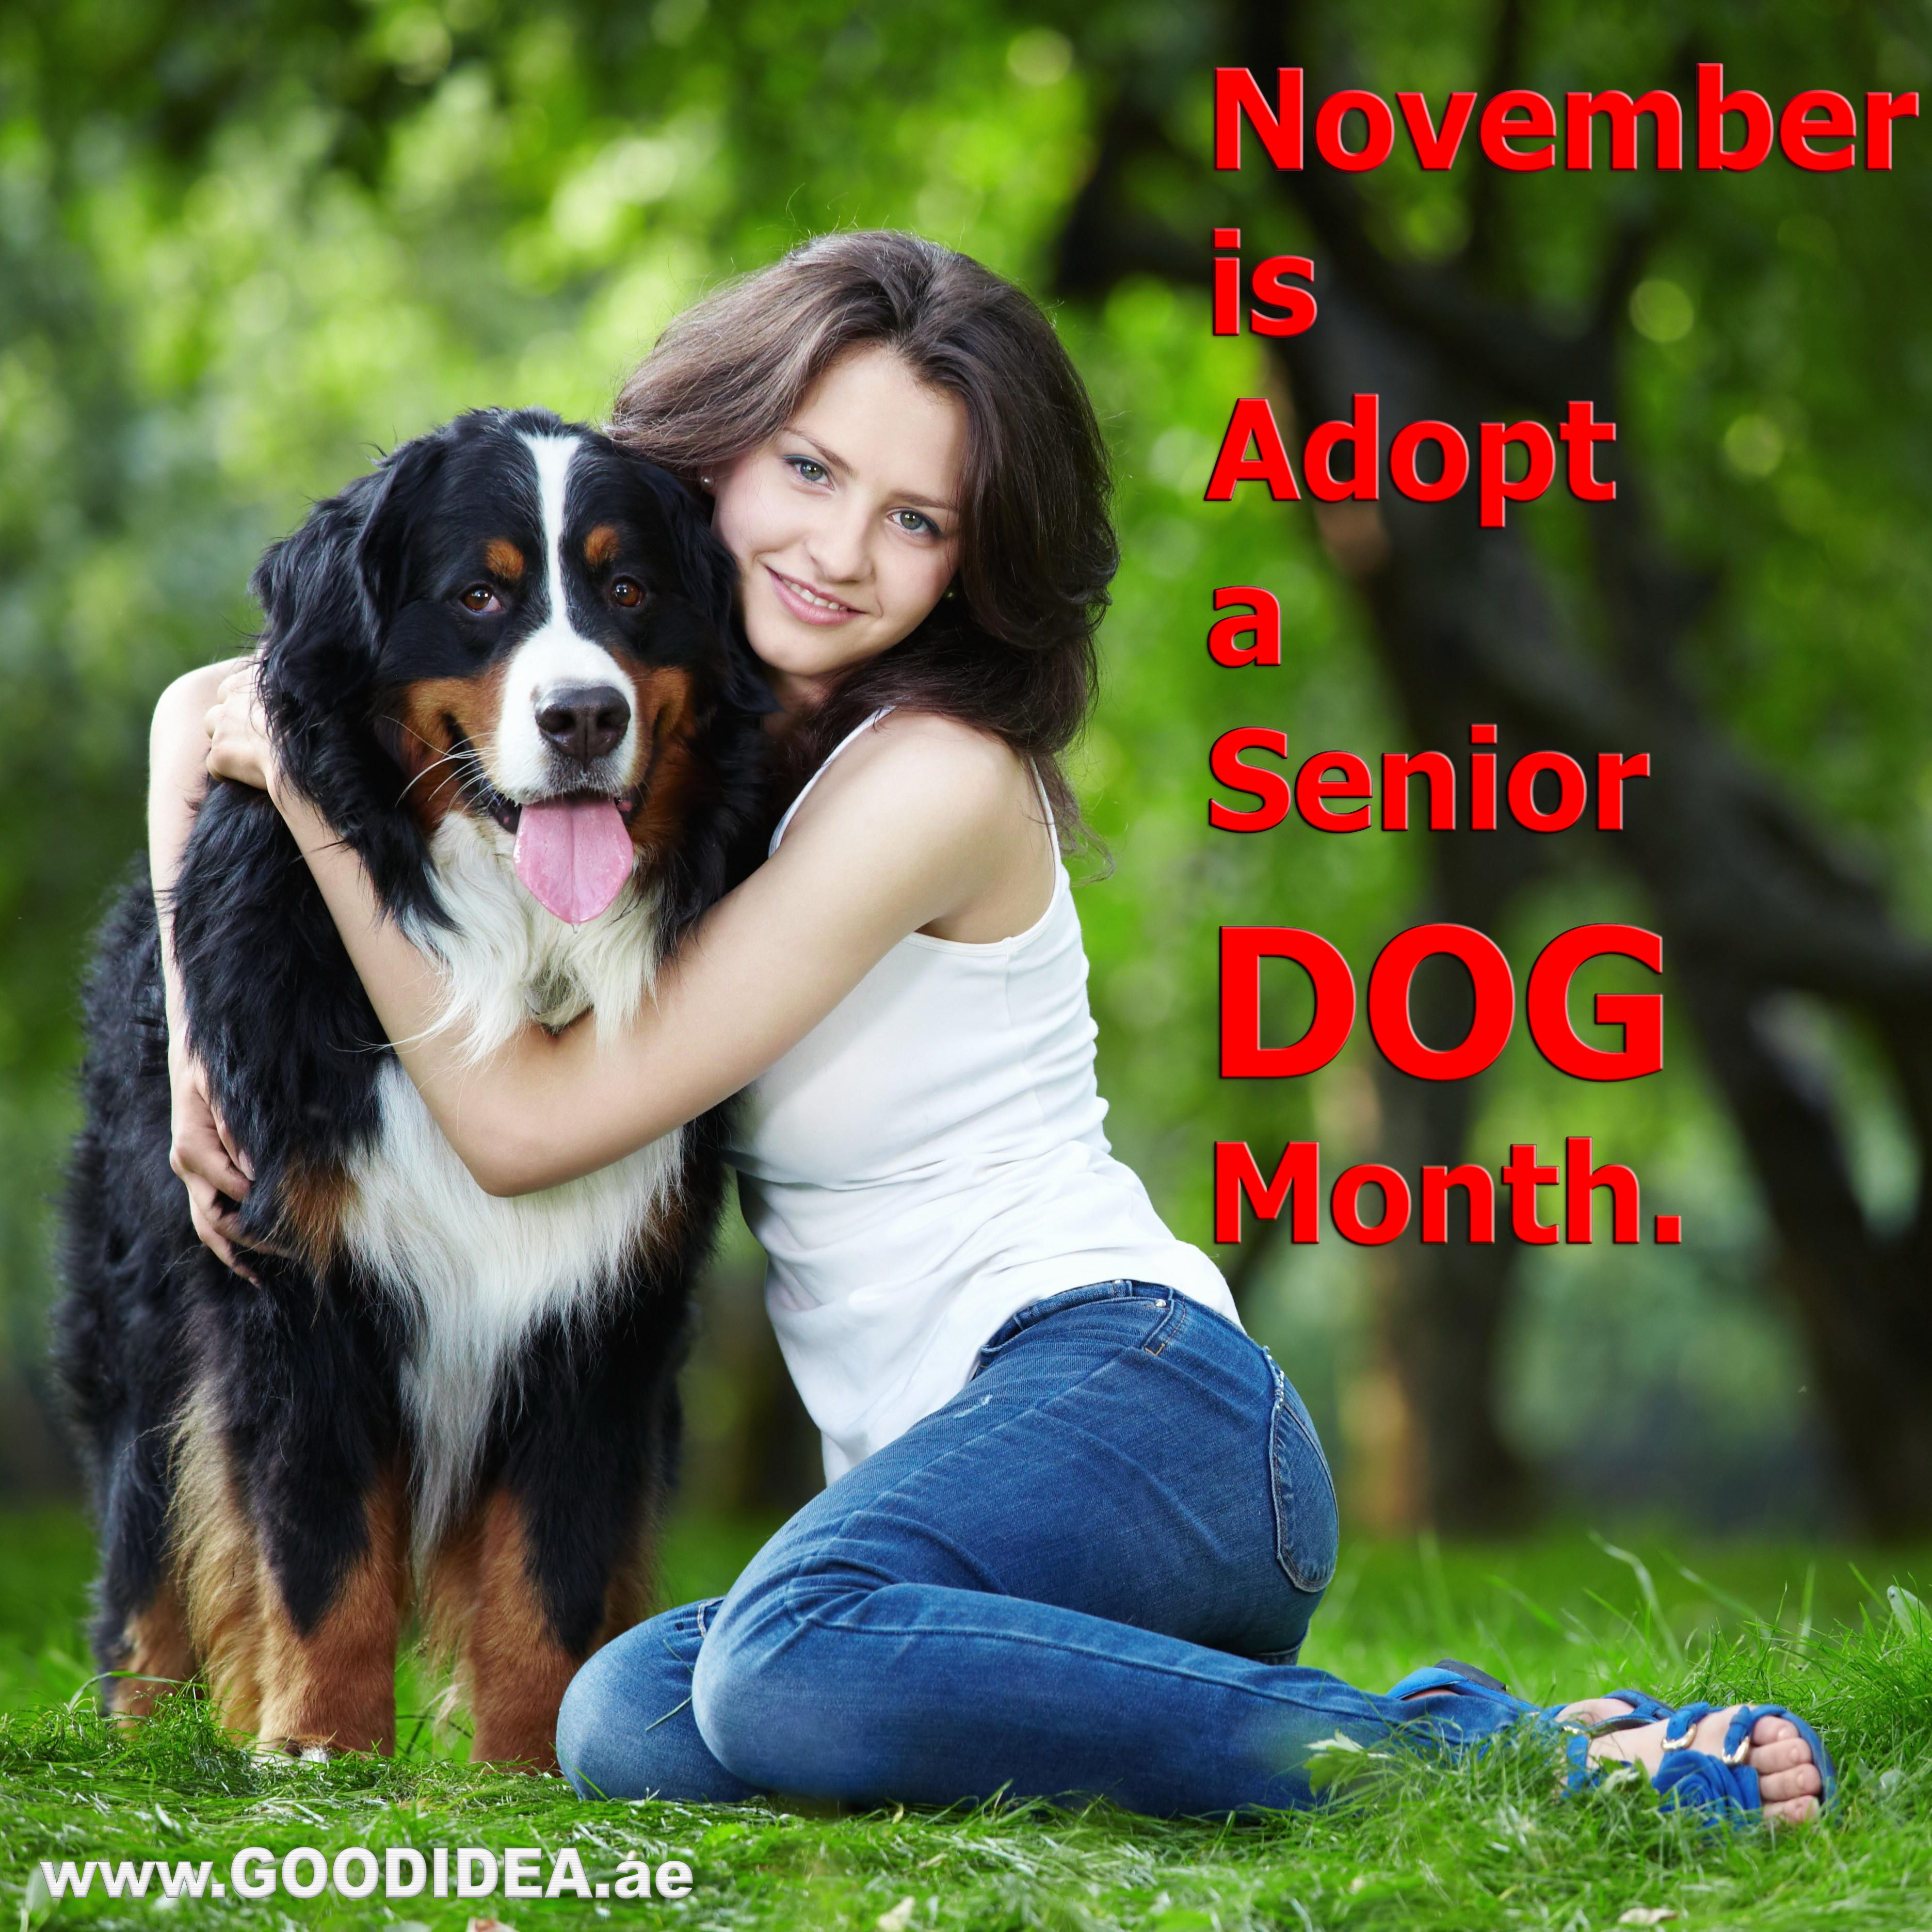 November is Adopt a Senior Dog Month. Share photos of your